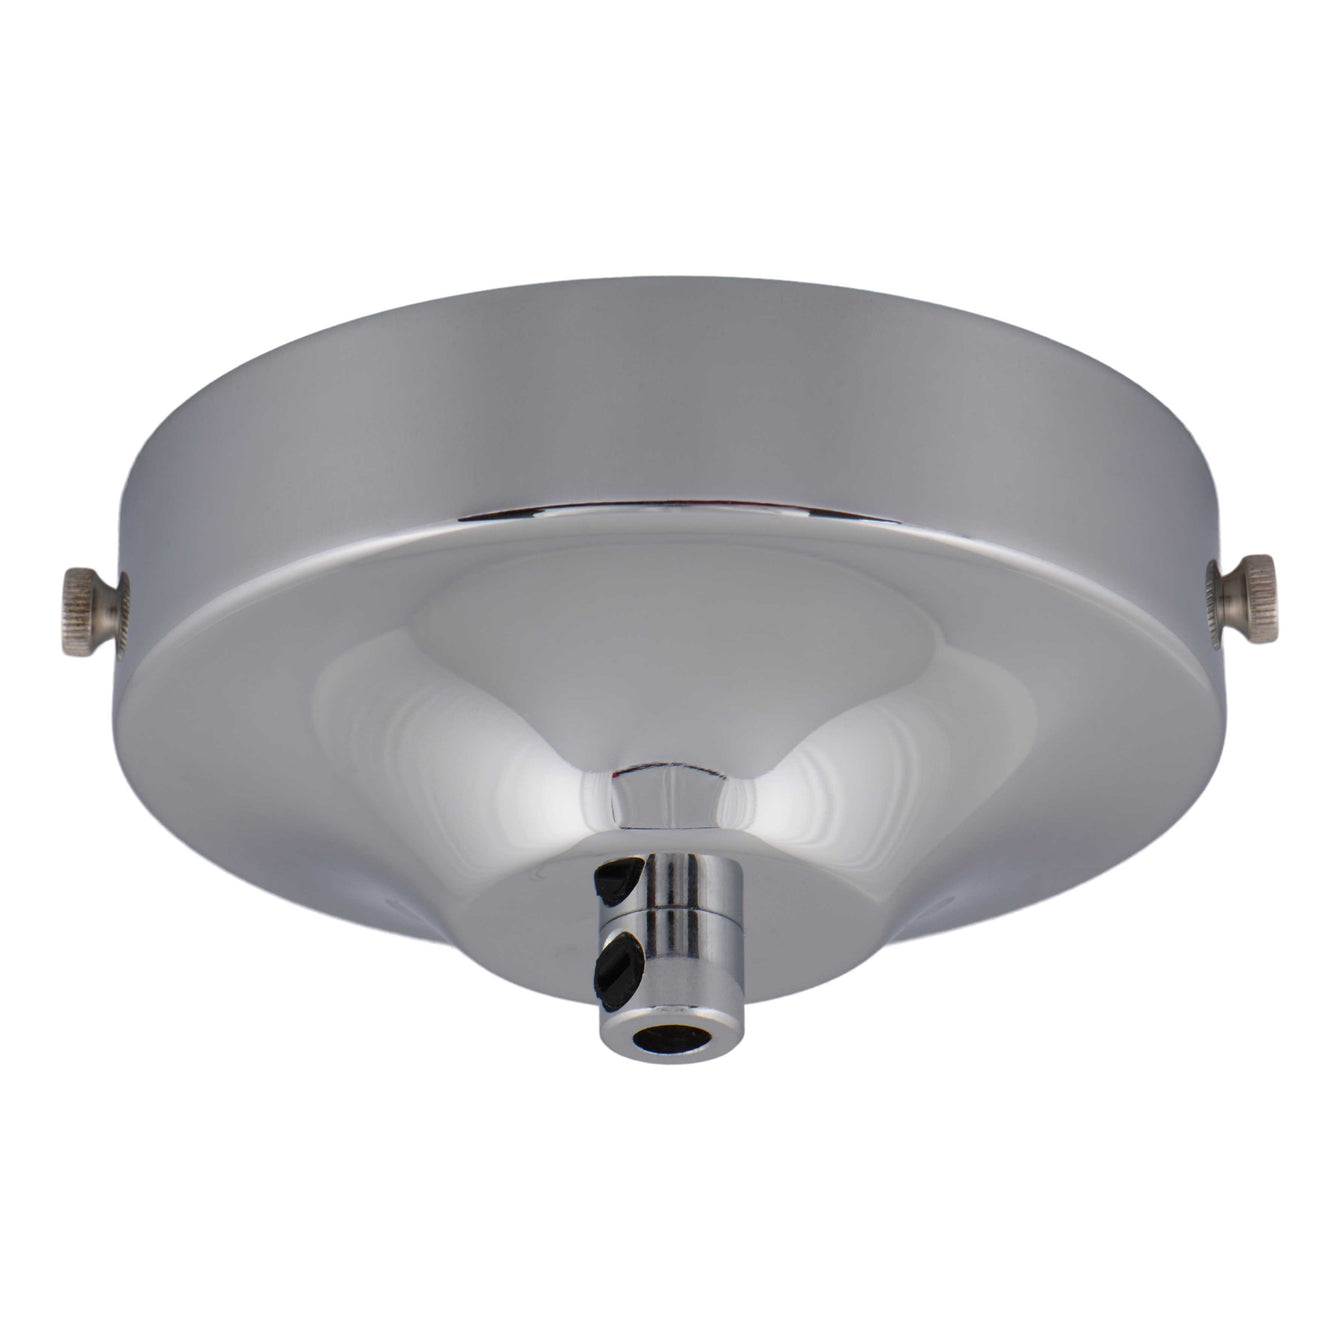 ElekTek 100mm Diameter Convex Ceiling Rose with Strap Bracket and Cord Grip Metallic Finishes Powder Coated Colours - Buy It Better Nickel